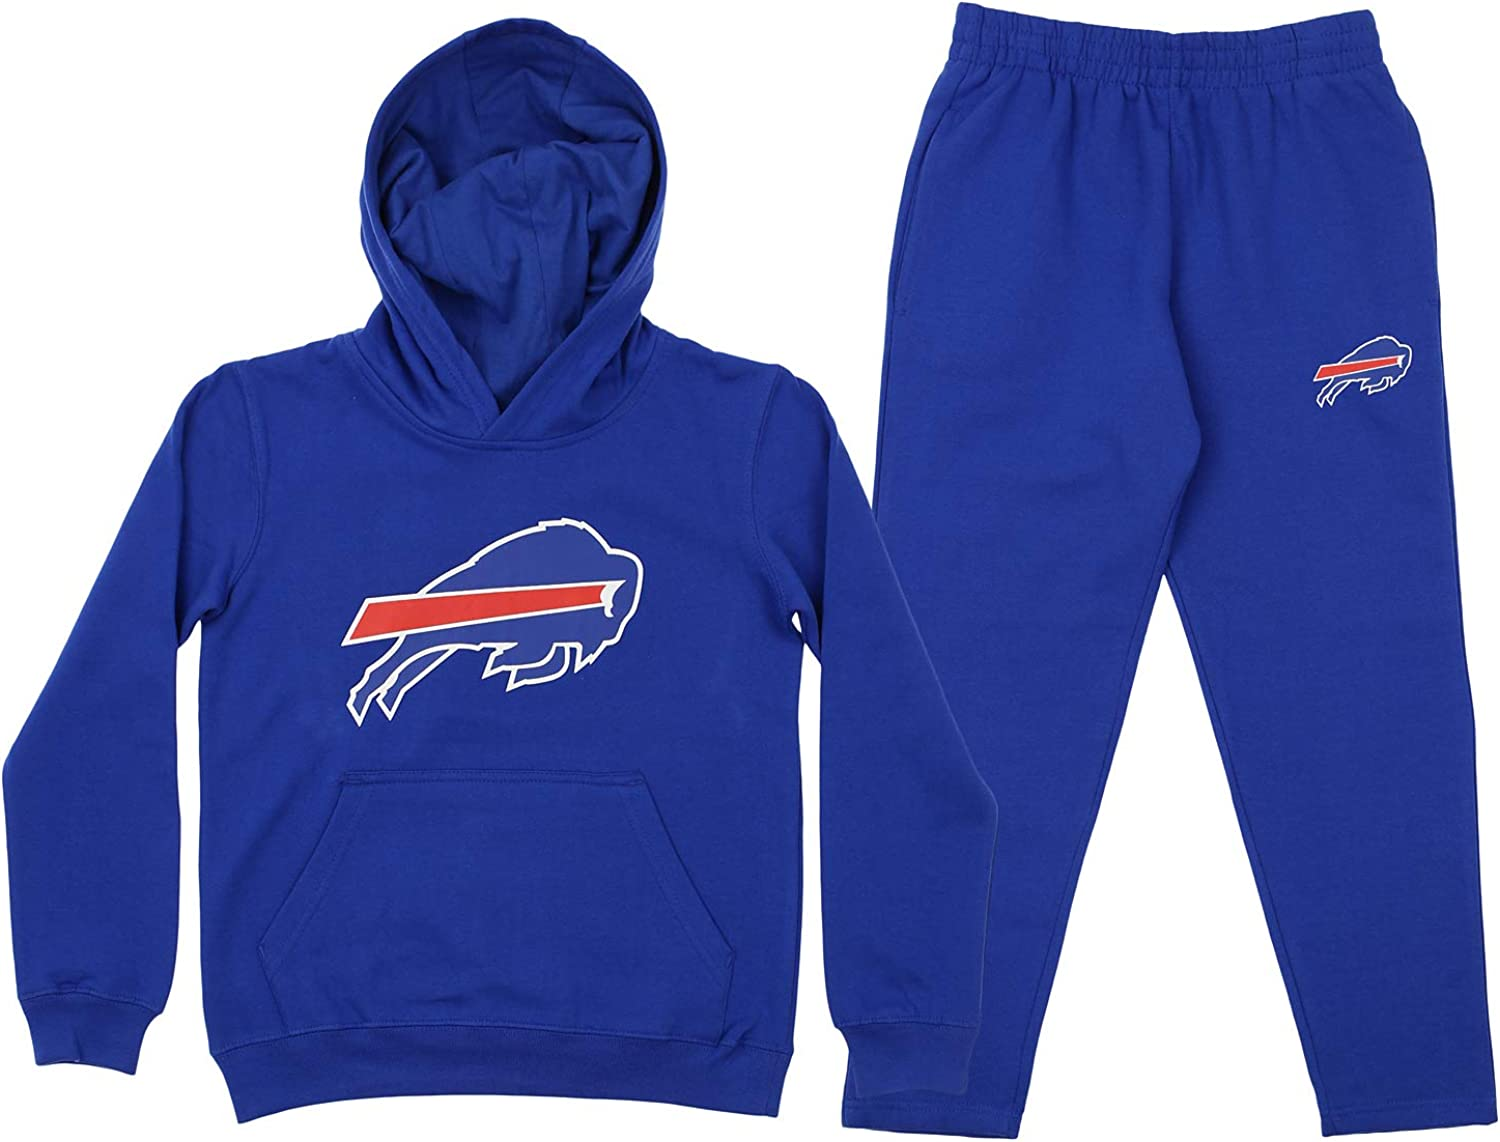 Outerstuff NFL Youth Boys 8-20 Team Color Pa Fleece and Credence At the price of surprise Hoodie